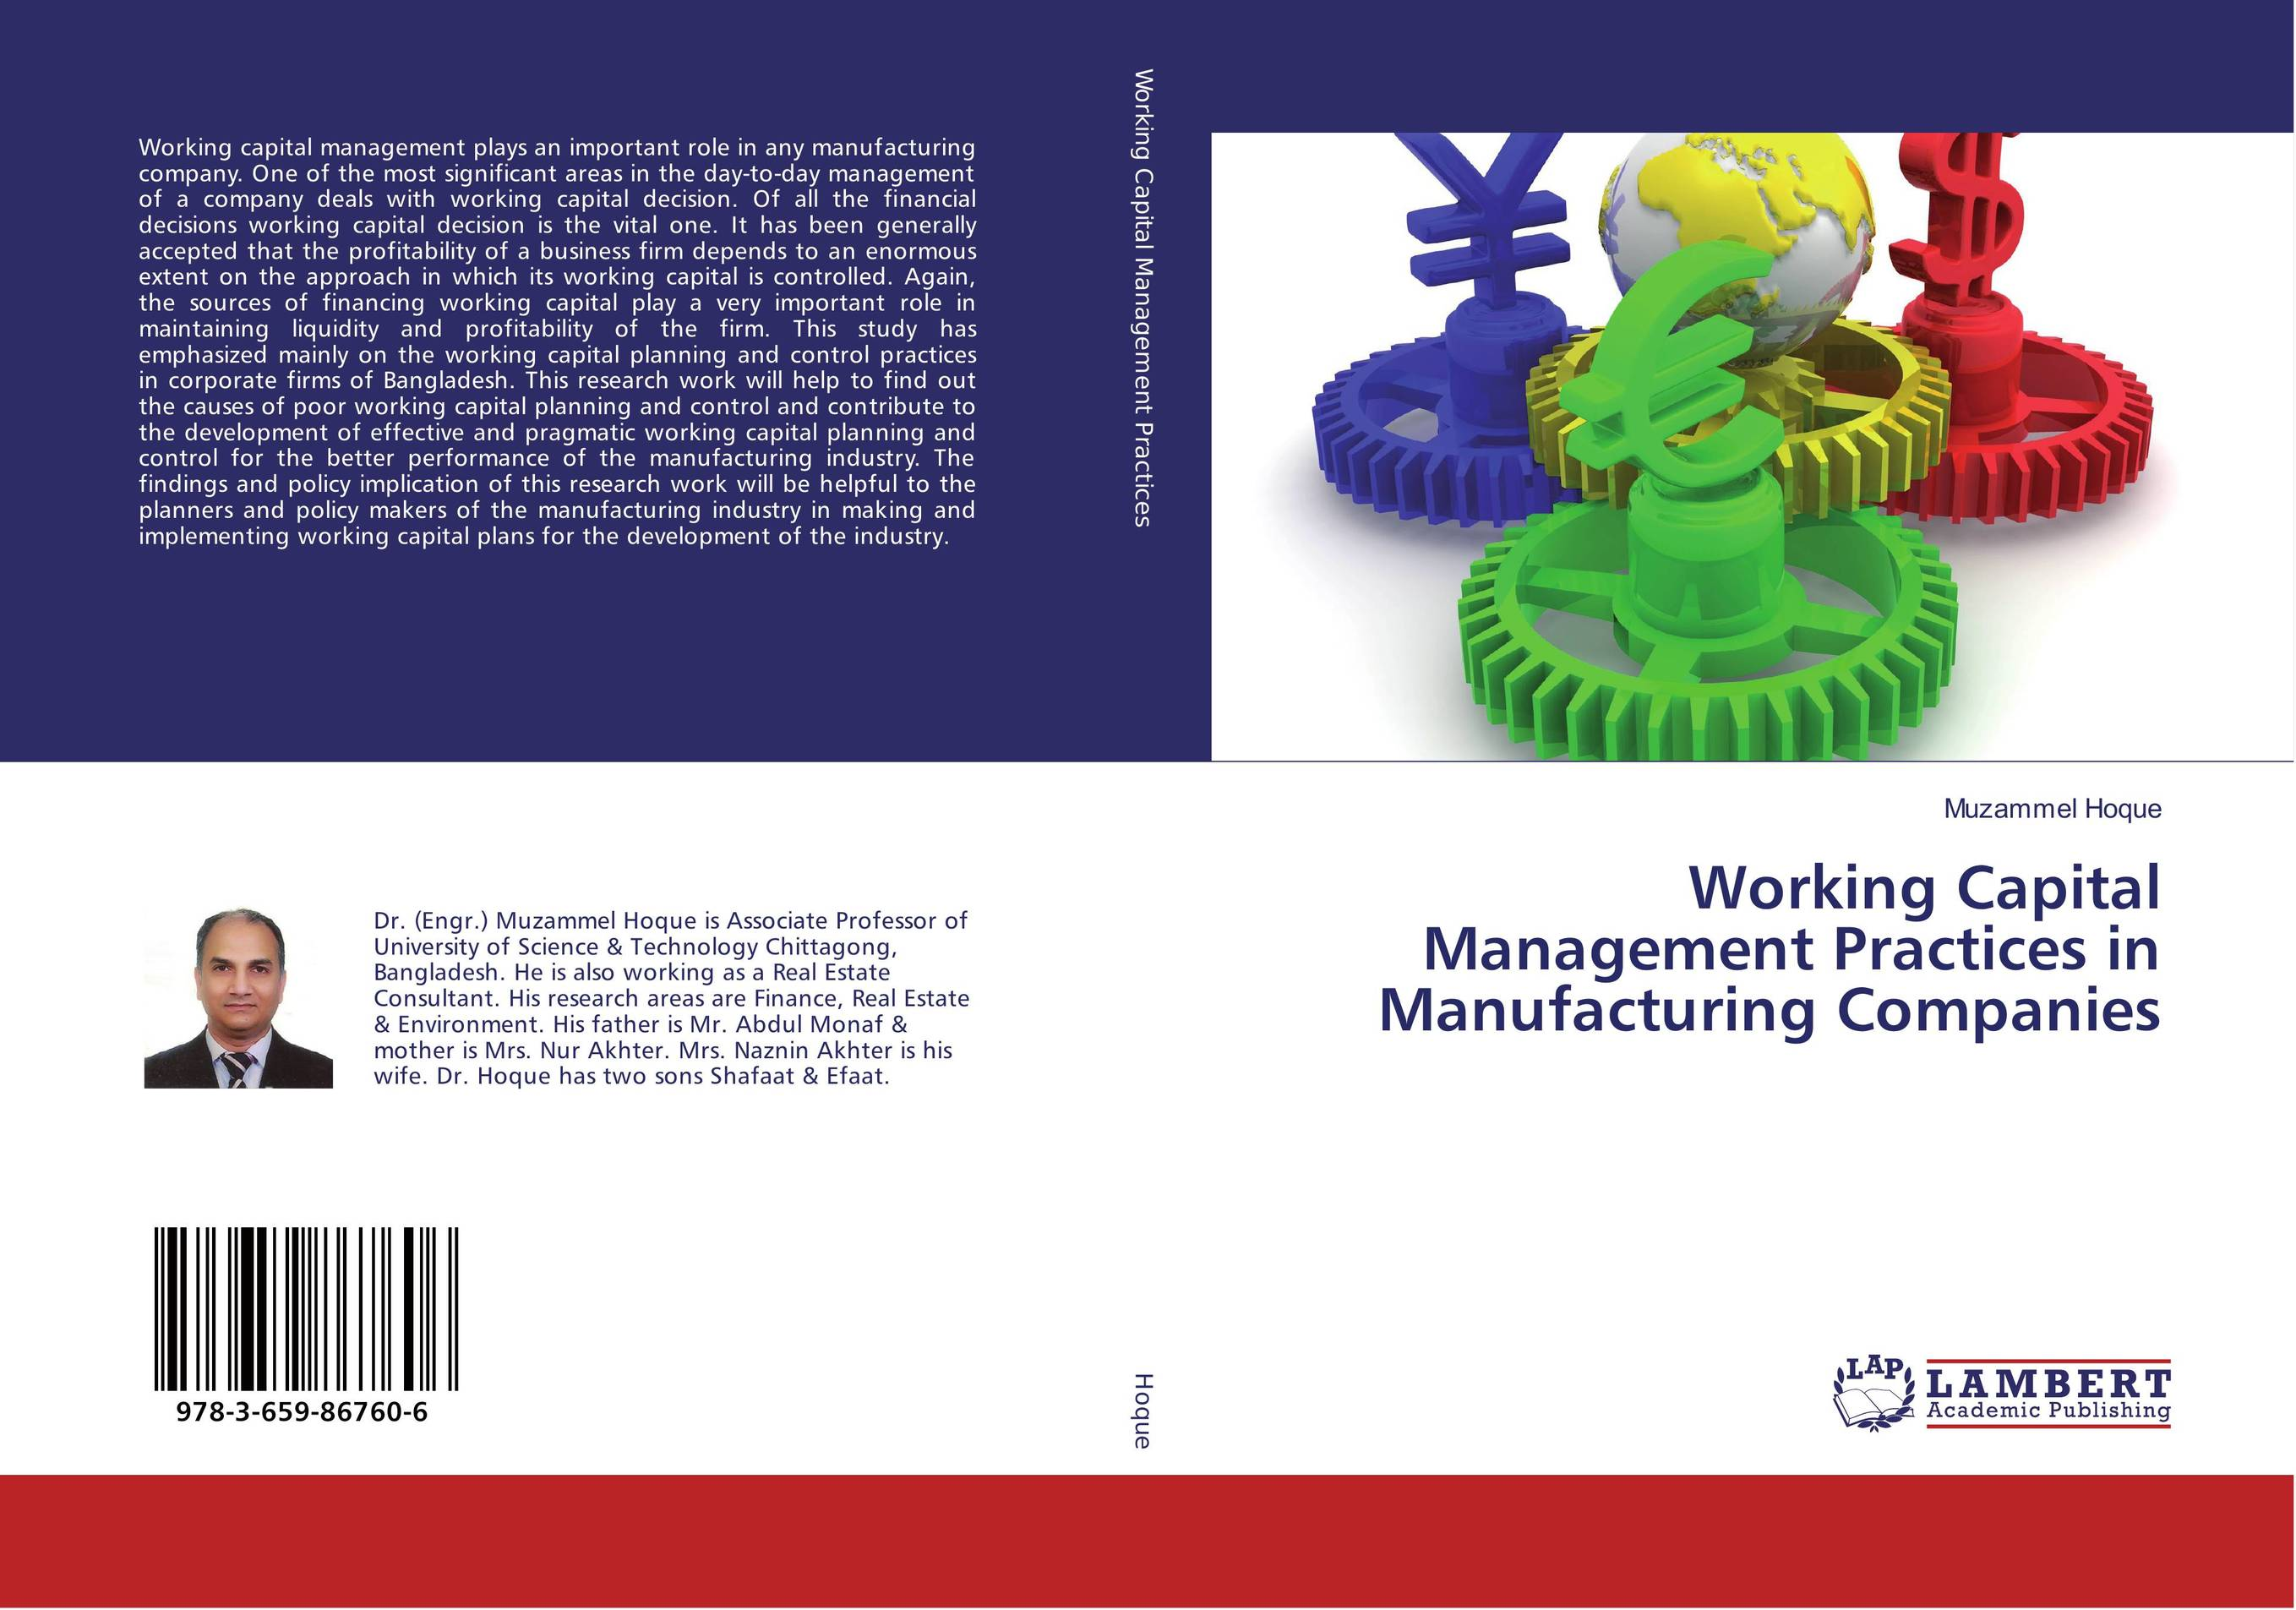 Working Capital Management Practices in Manufacturing Companies evaluation of the internal control practices